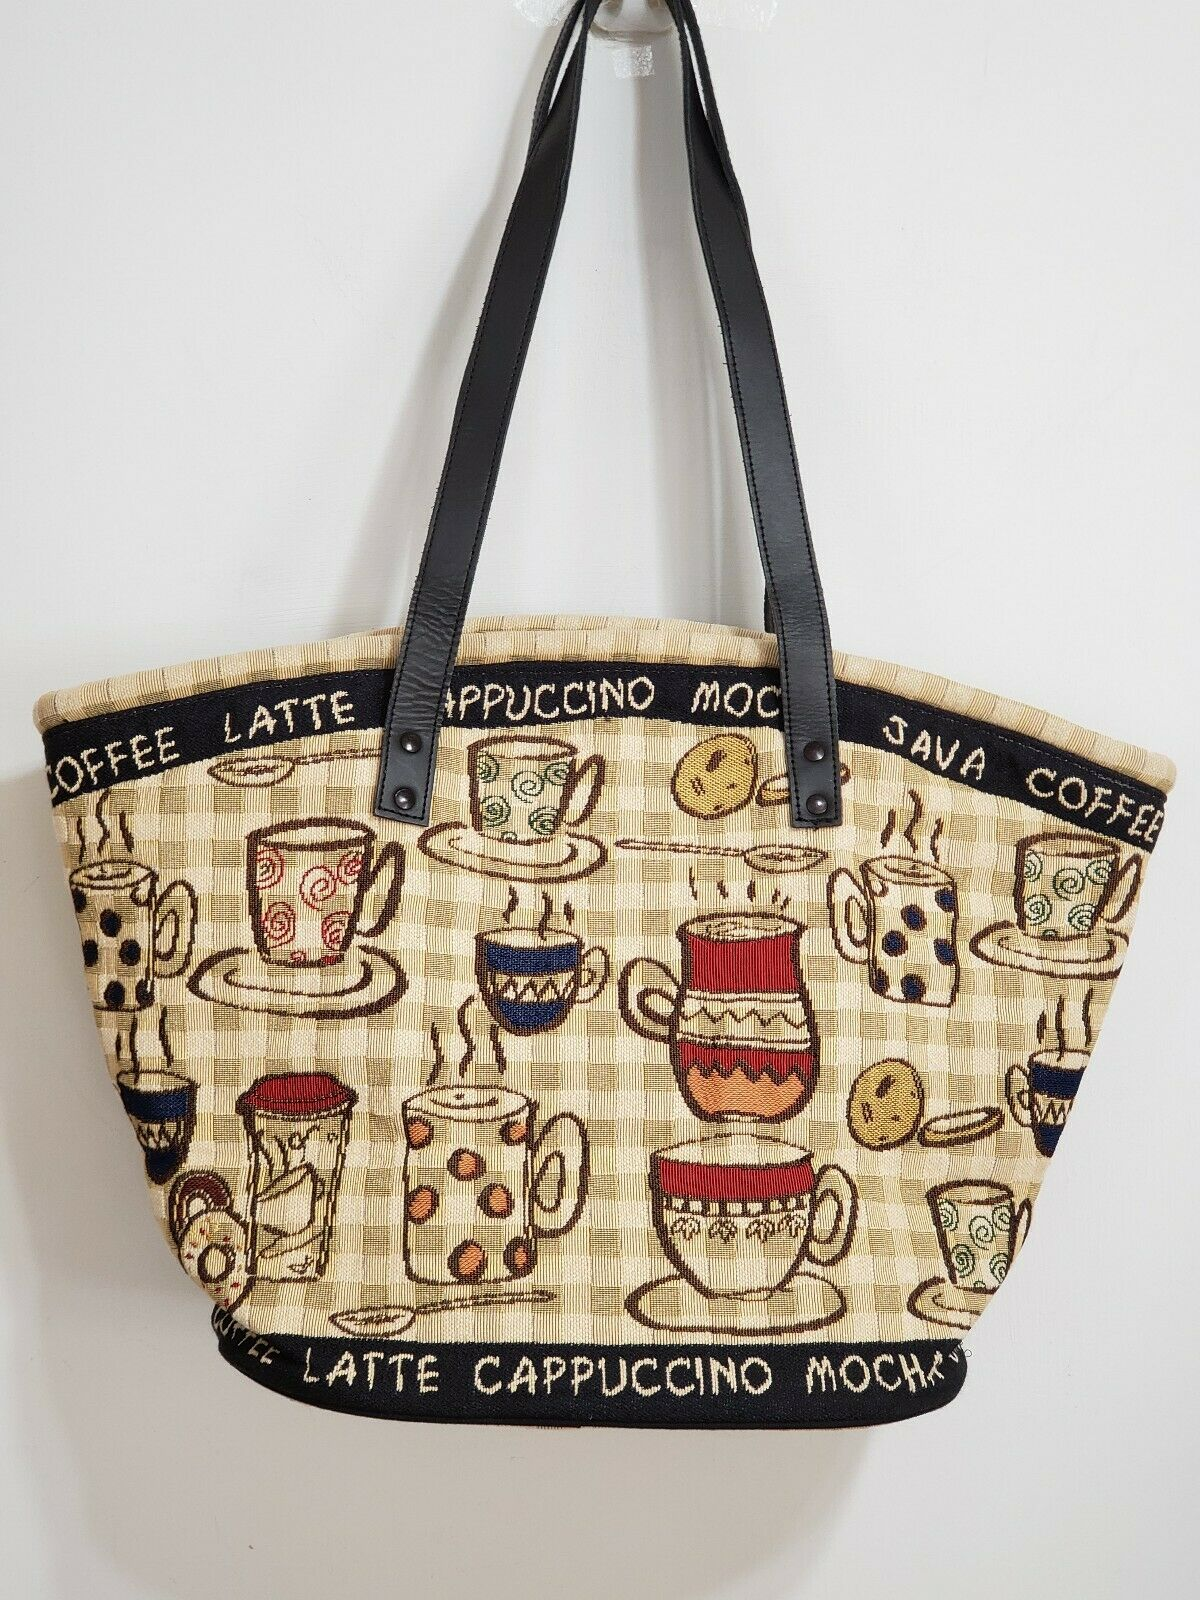 Park B. Smith Tapestry Rustic Cafe Multifunctional Large Tote Bag BNWT